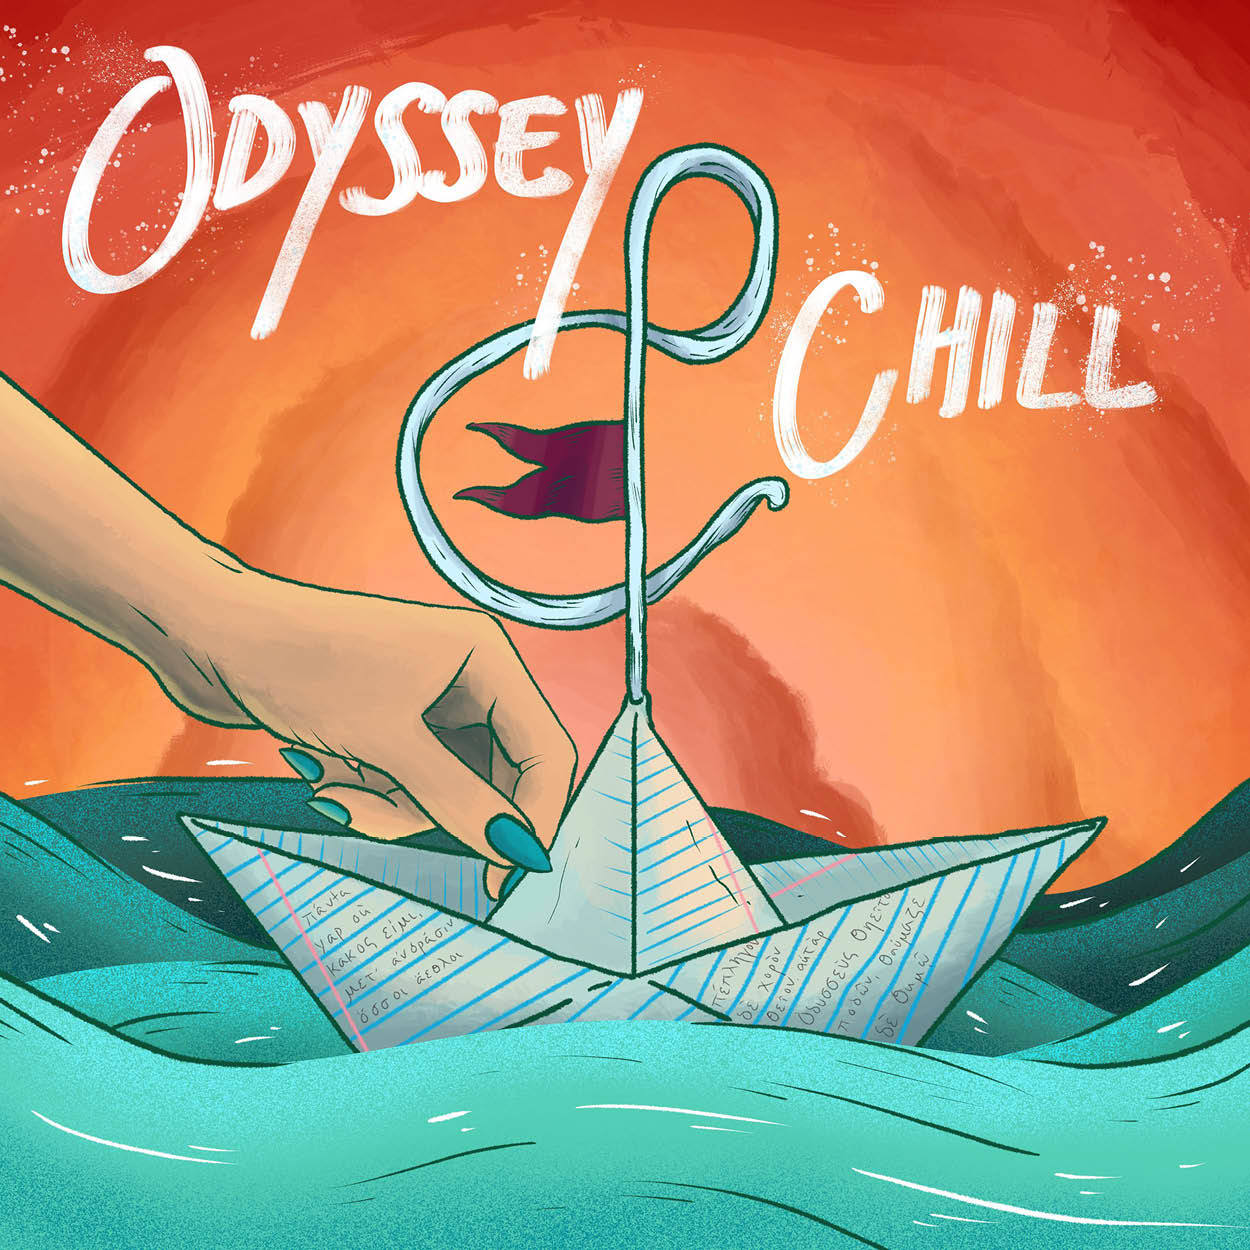 A cartoon of a paper boat with Odyssey & Chill written over it